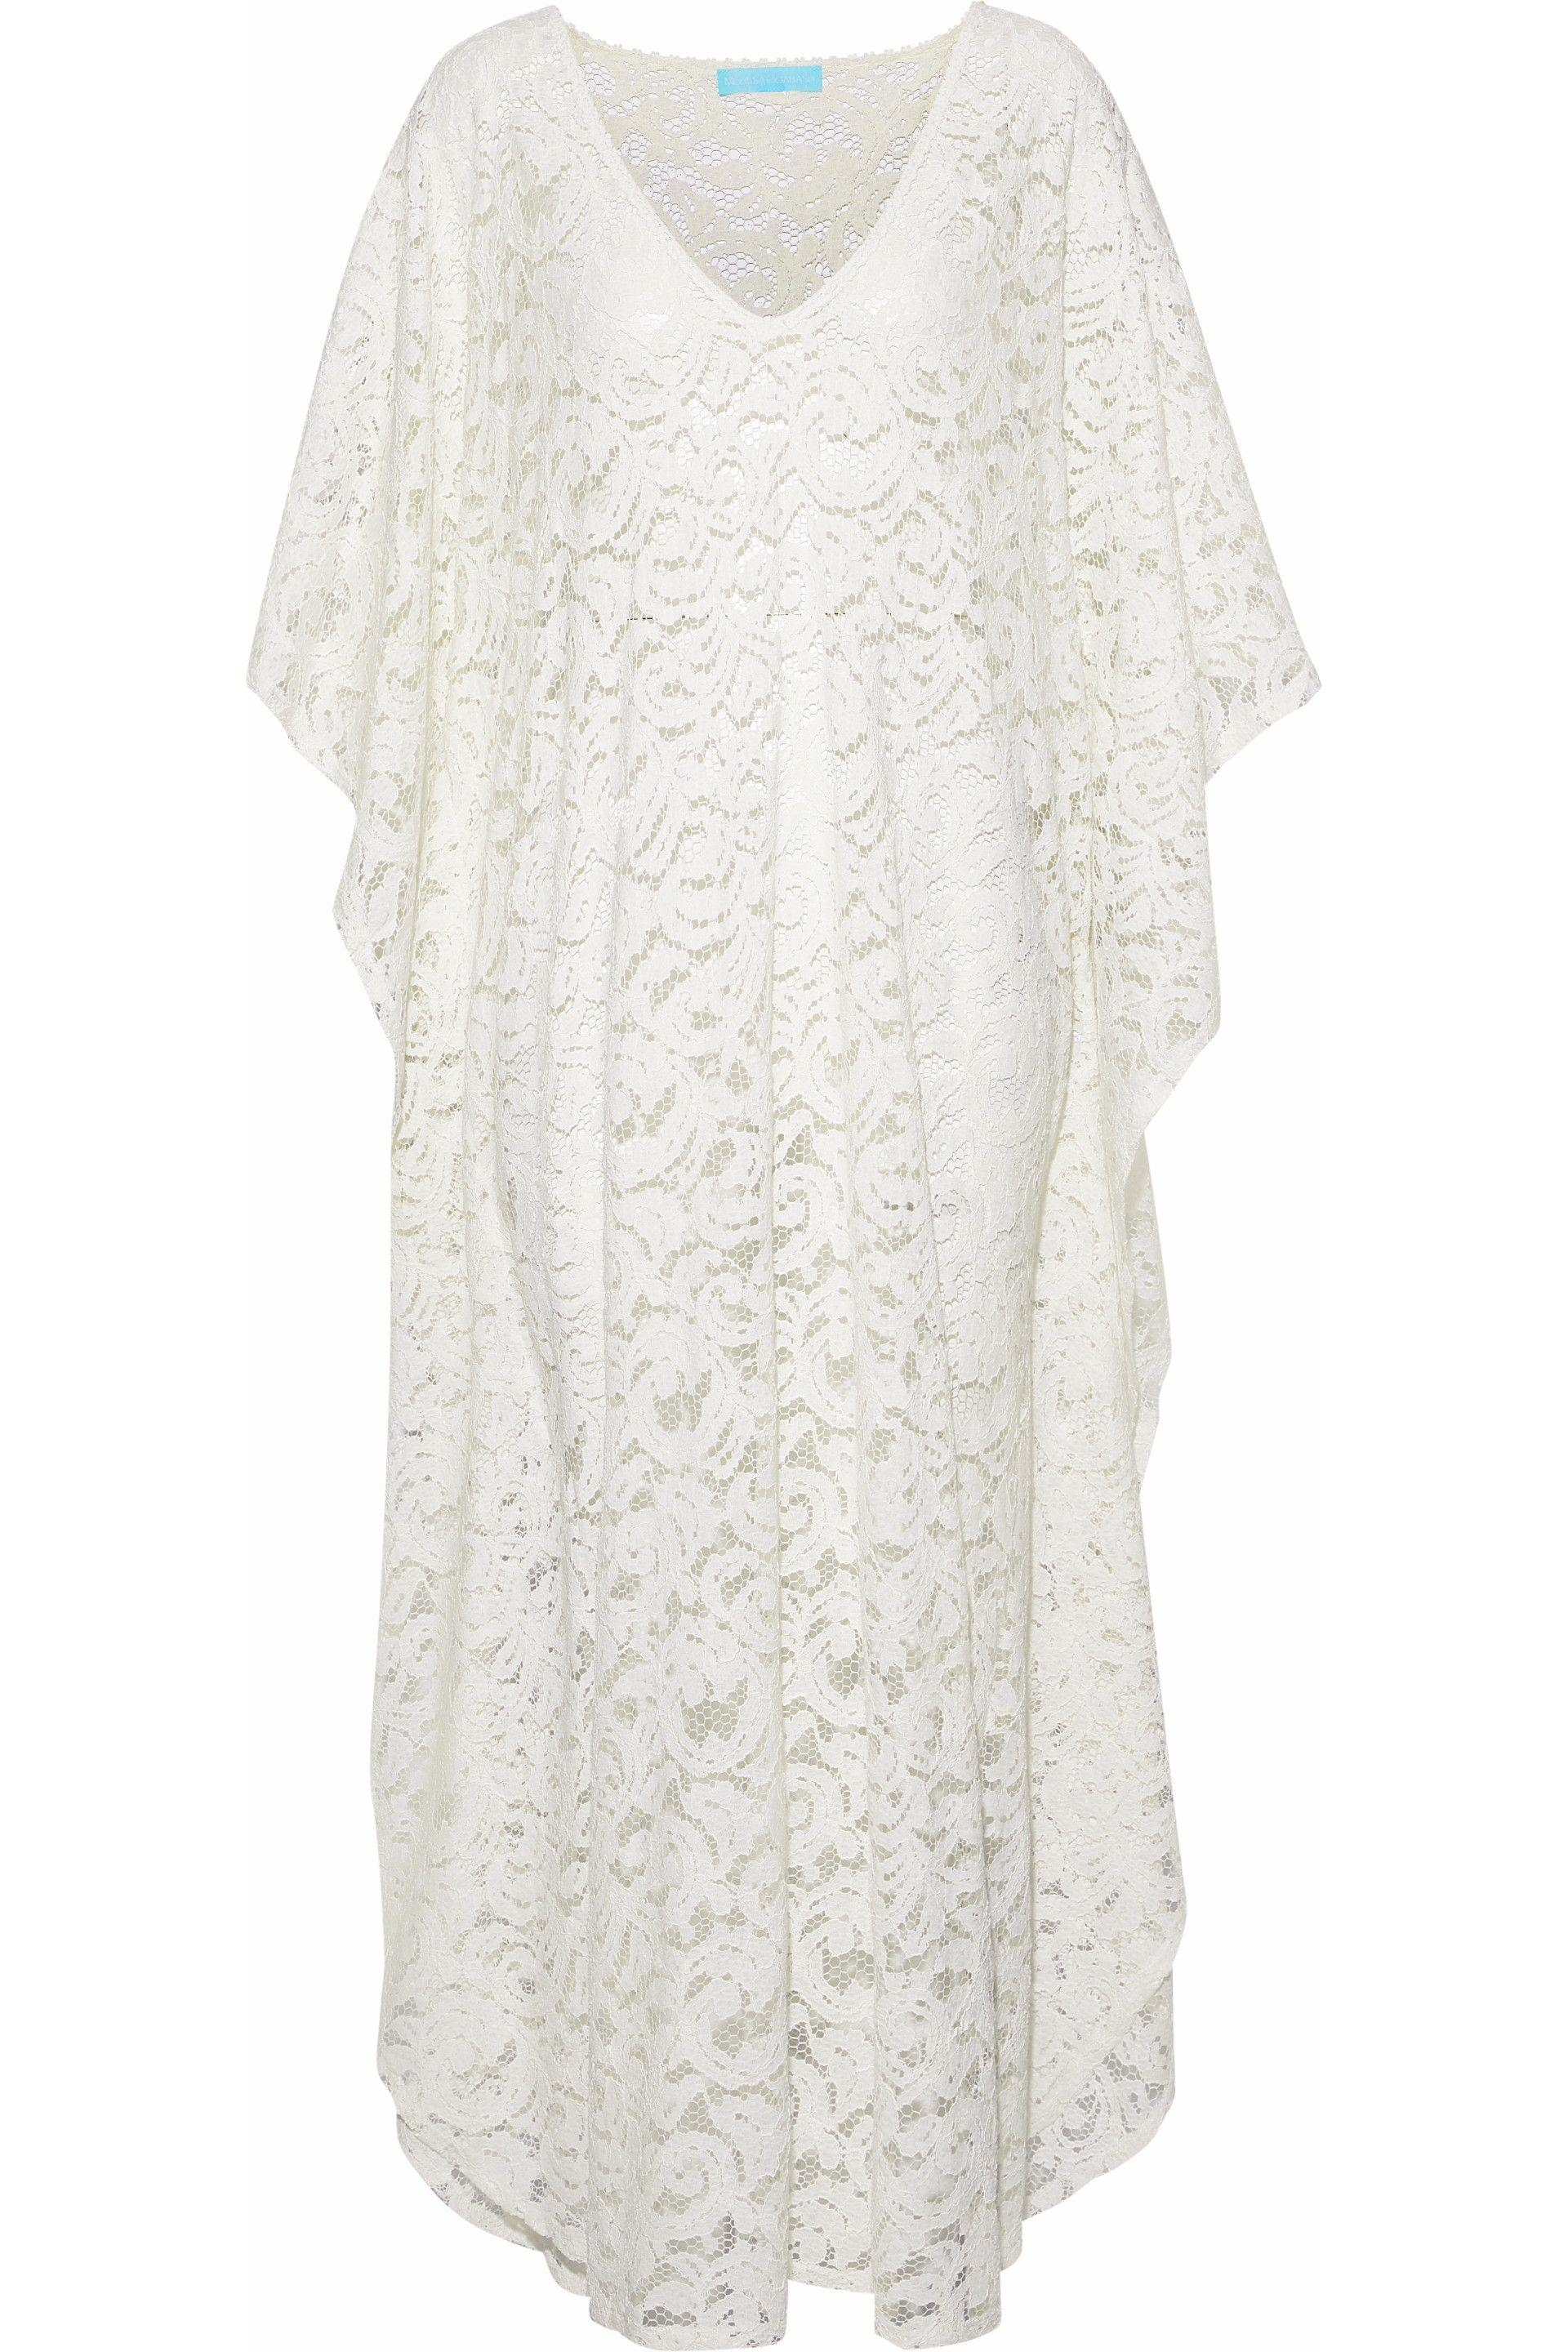 Melissa Odabash Woman Lace Kaftan White Size ONESIZE Melissa Odabash Explore Top-Rated Outlet Enjoy Cheap Sale Perfect 1D5Ct